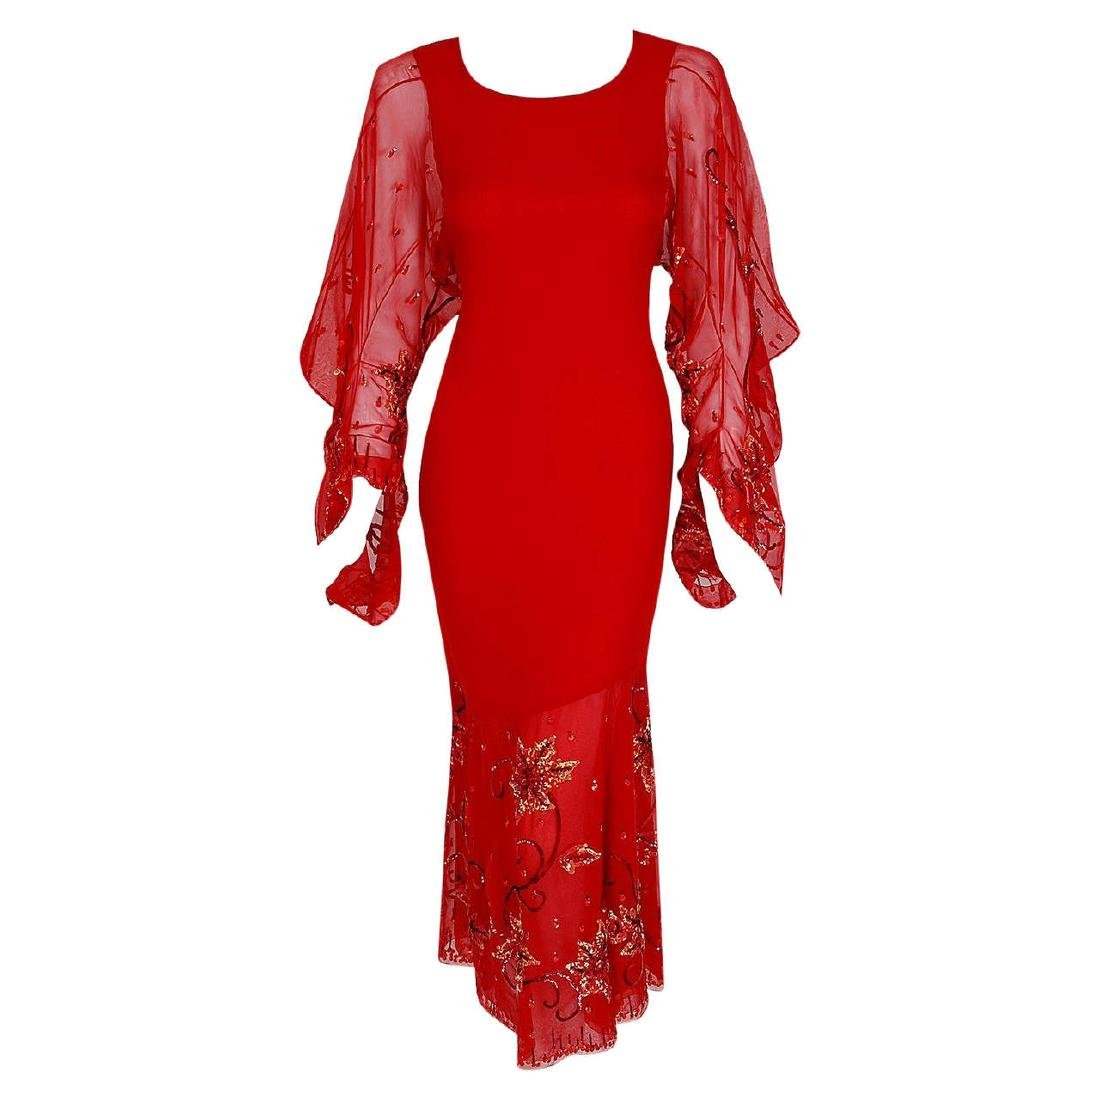 2003 Christian Dior Haute-Couture Red Beaded Silk